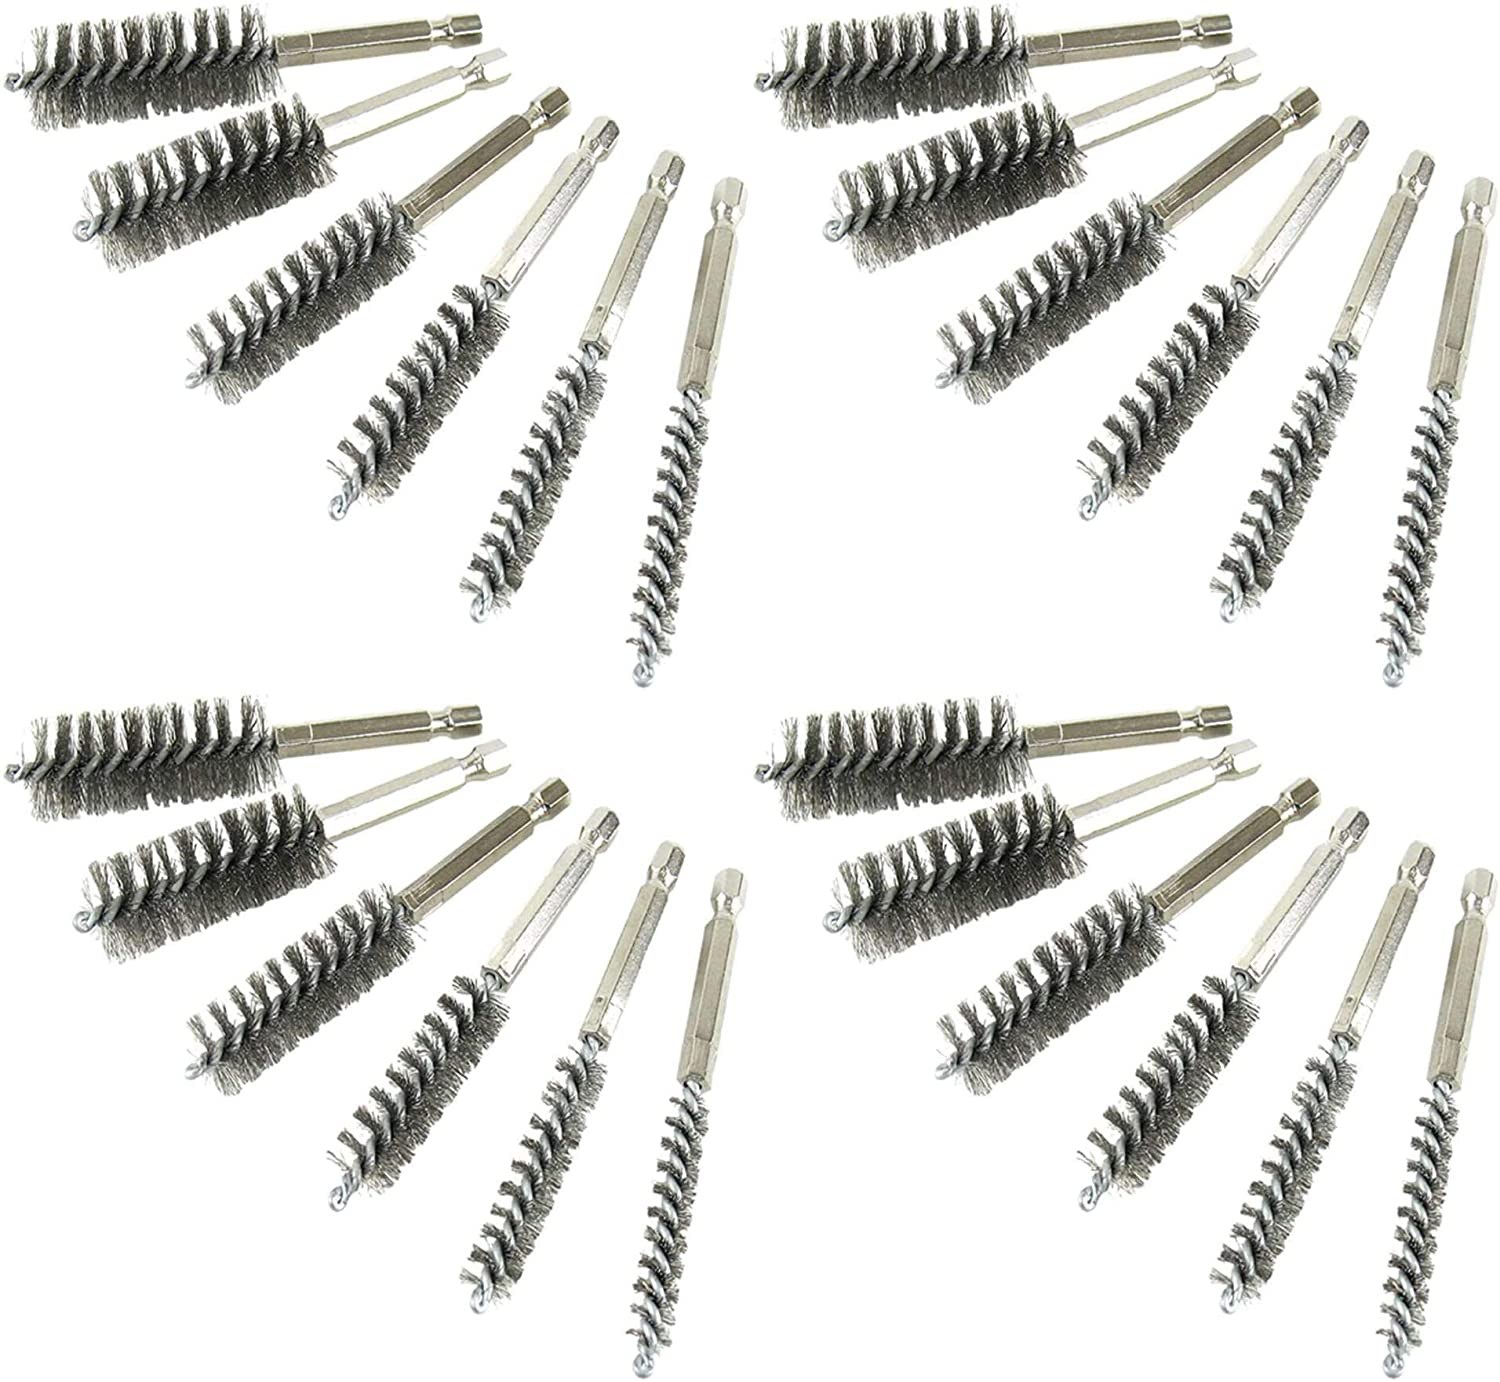 silver Twisted Wire Stainless Steel Bore Brush Set